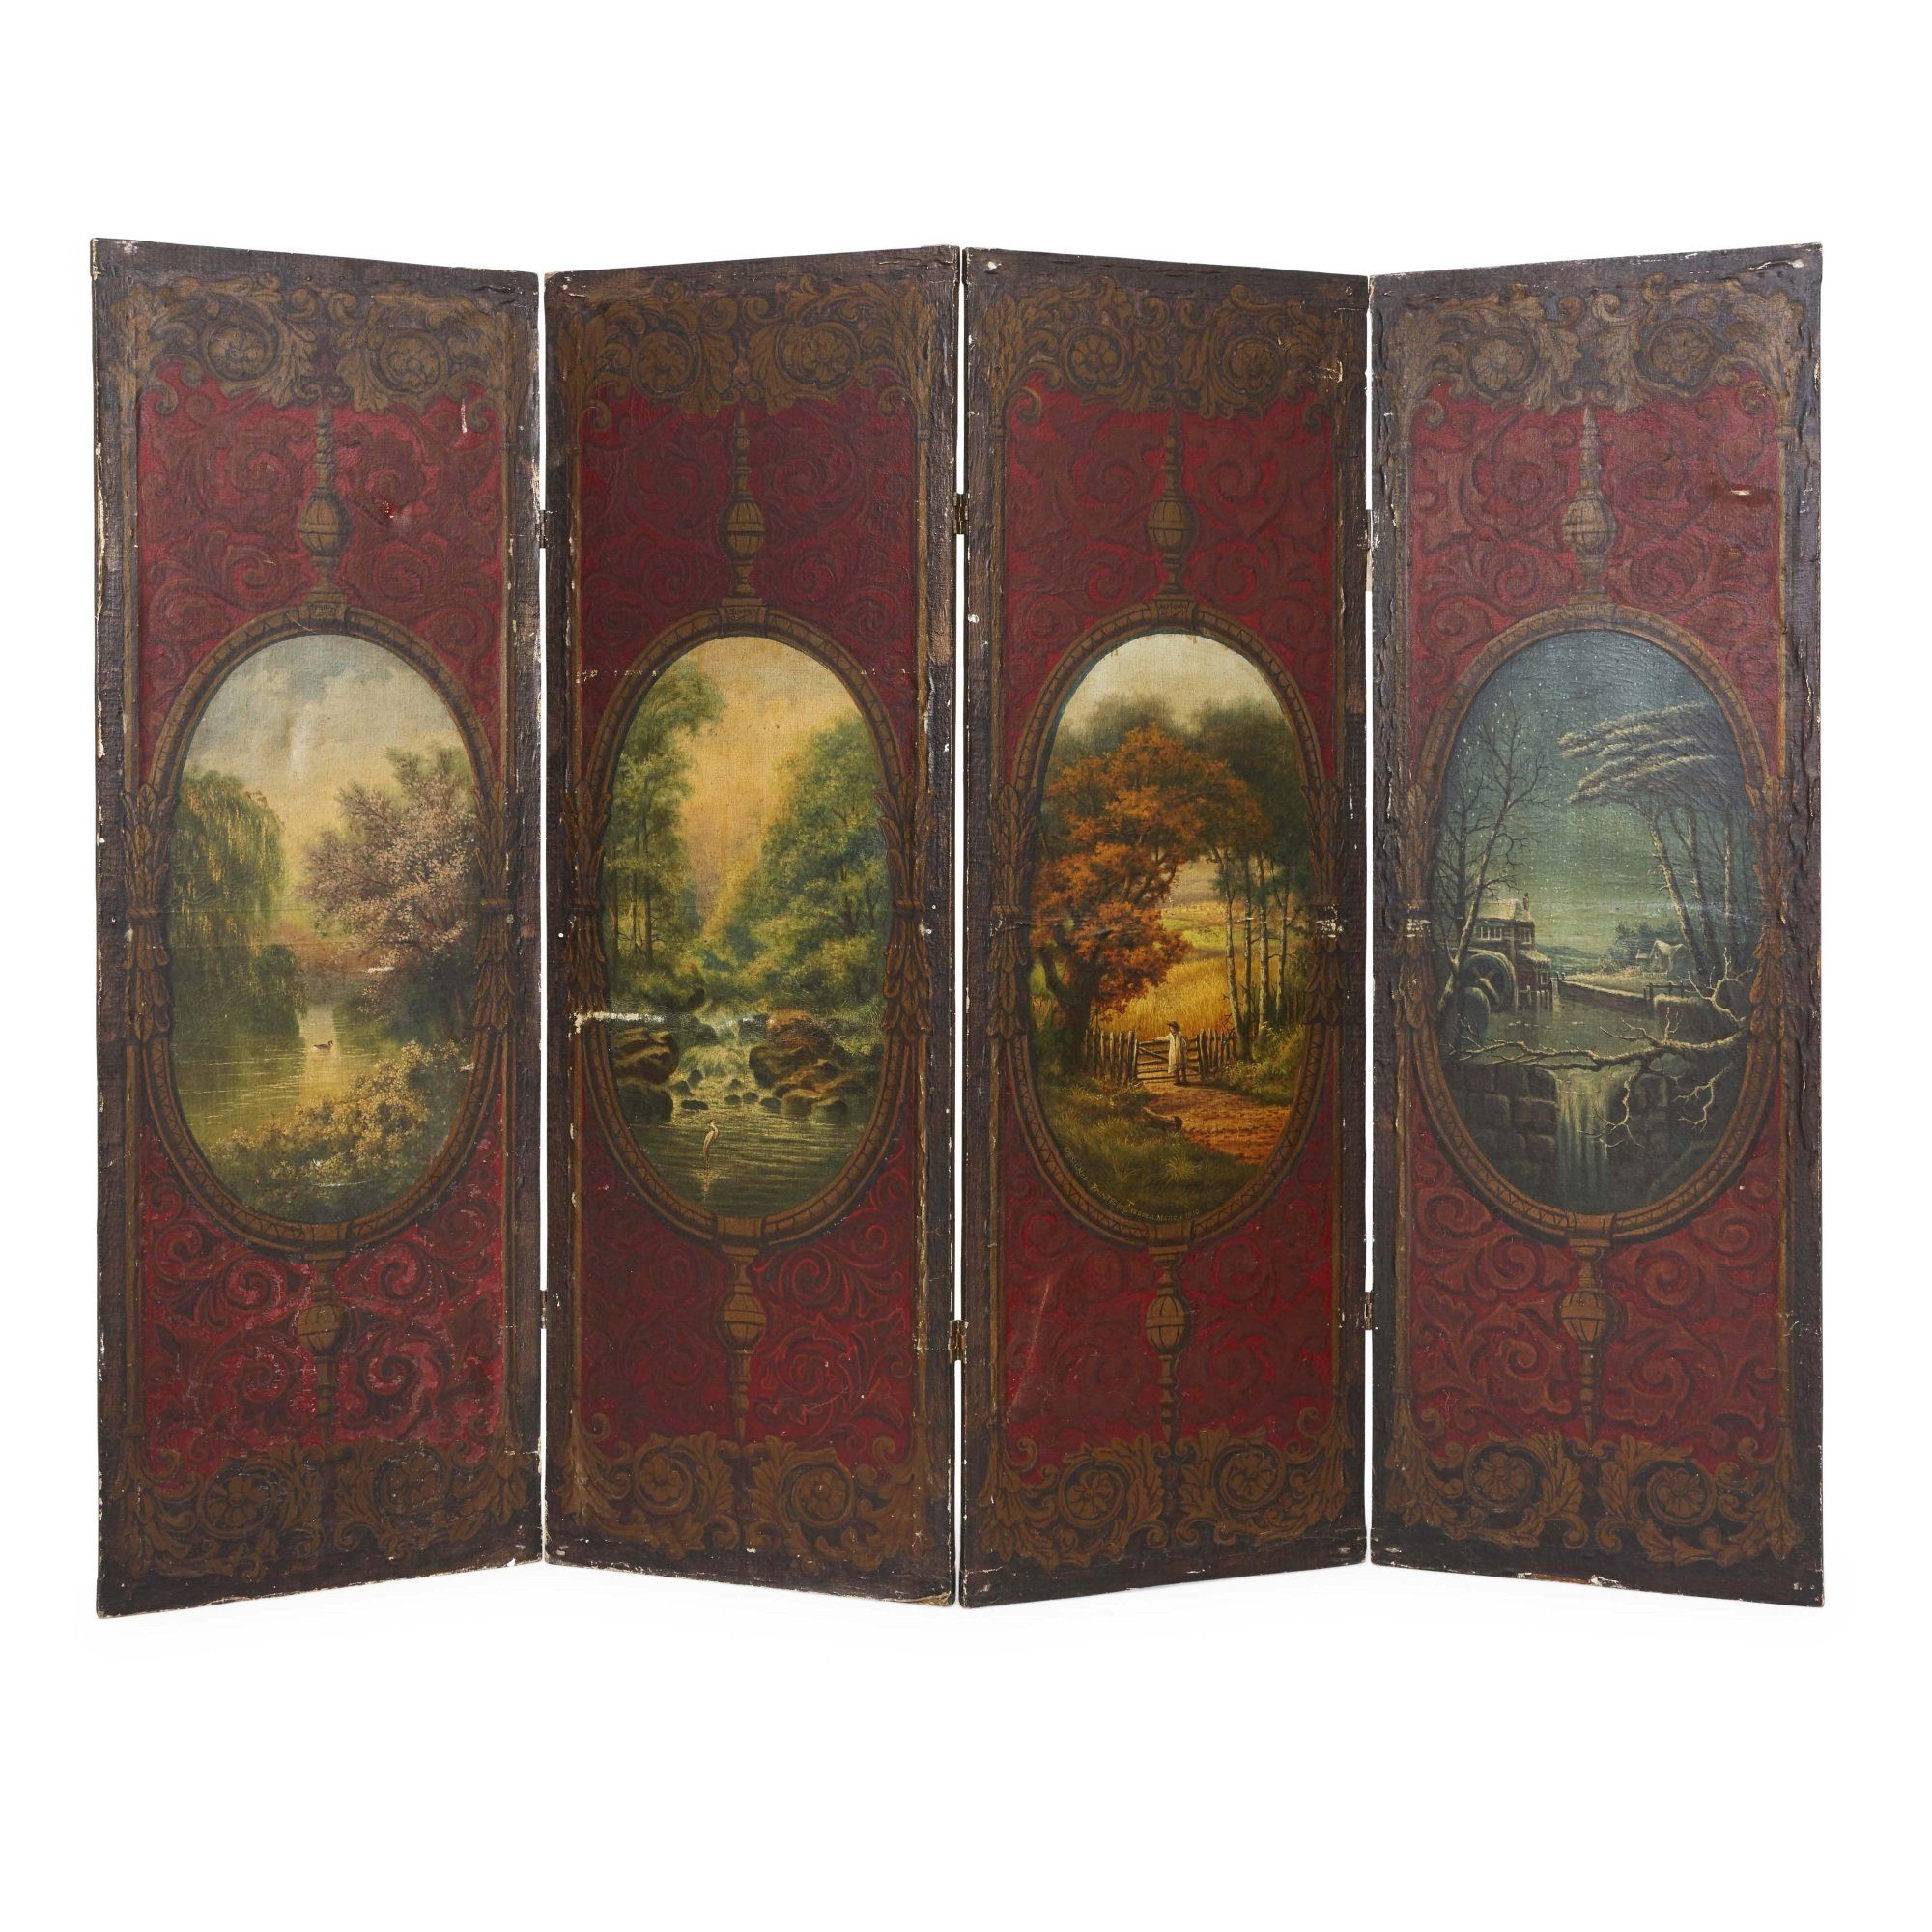 Antique French Folding Screen Painted In The Romantic